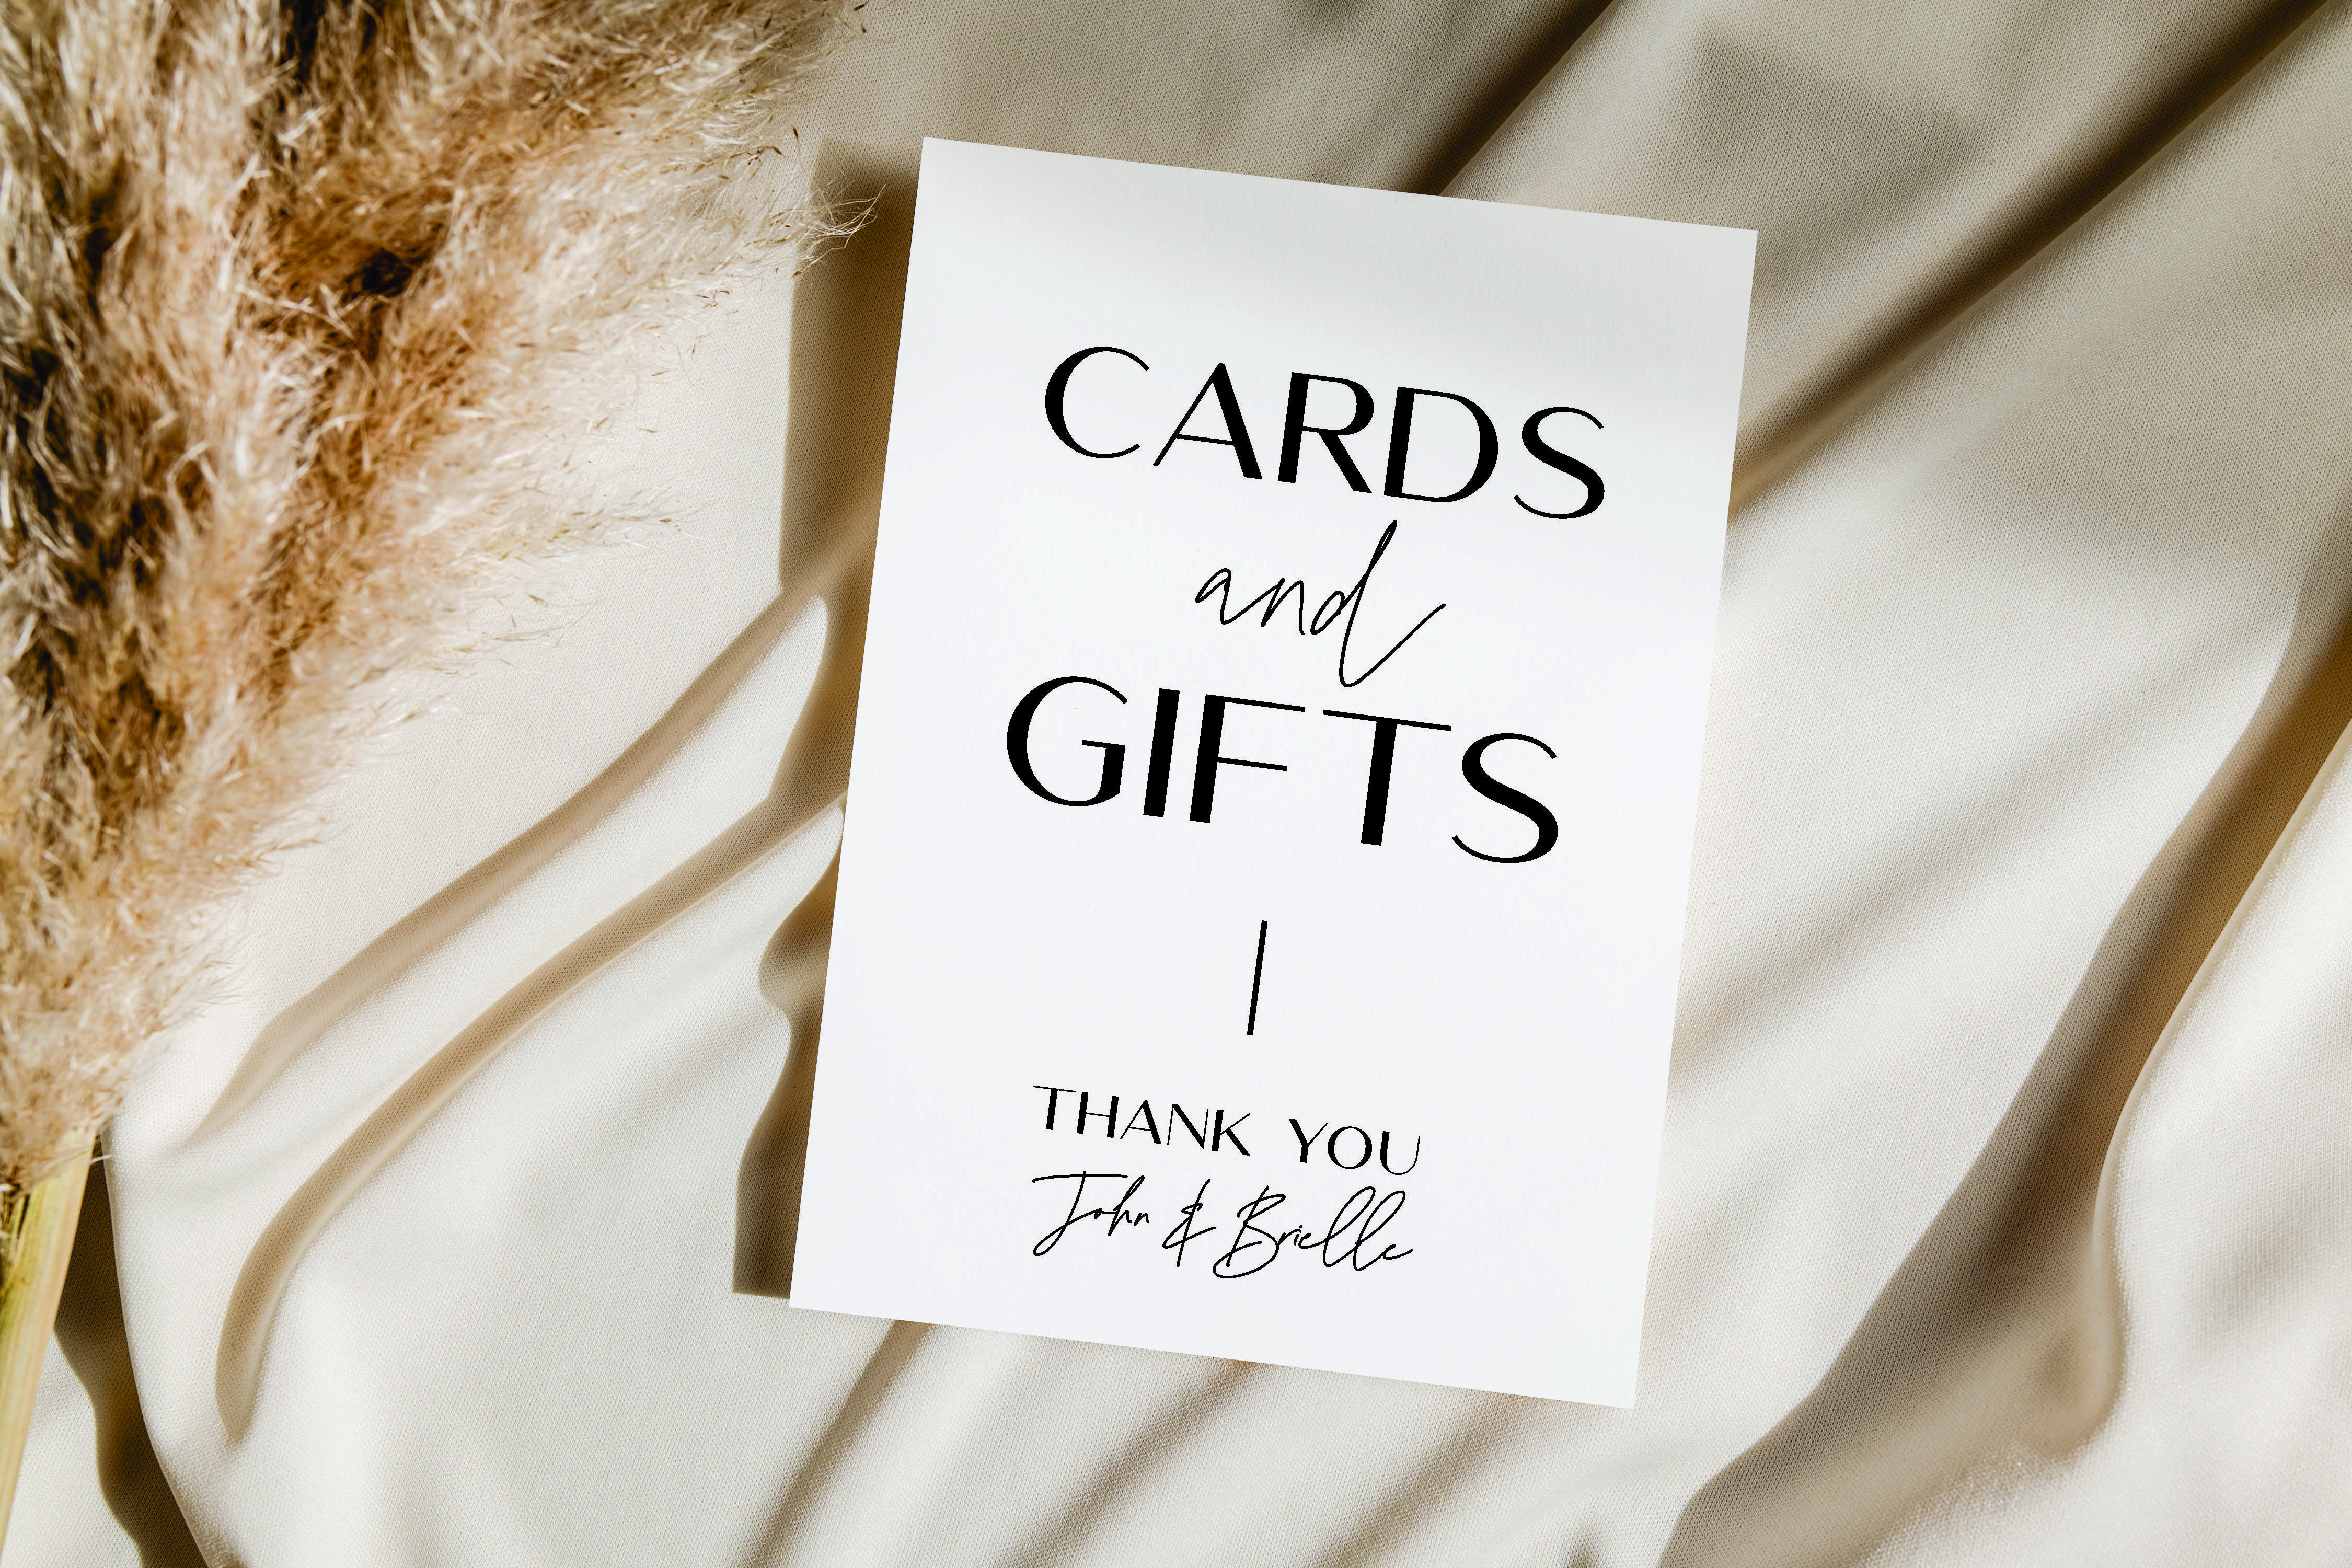 William Cards & Gifts Thank you acrylic sign